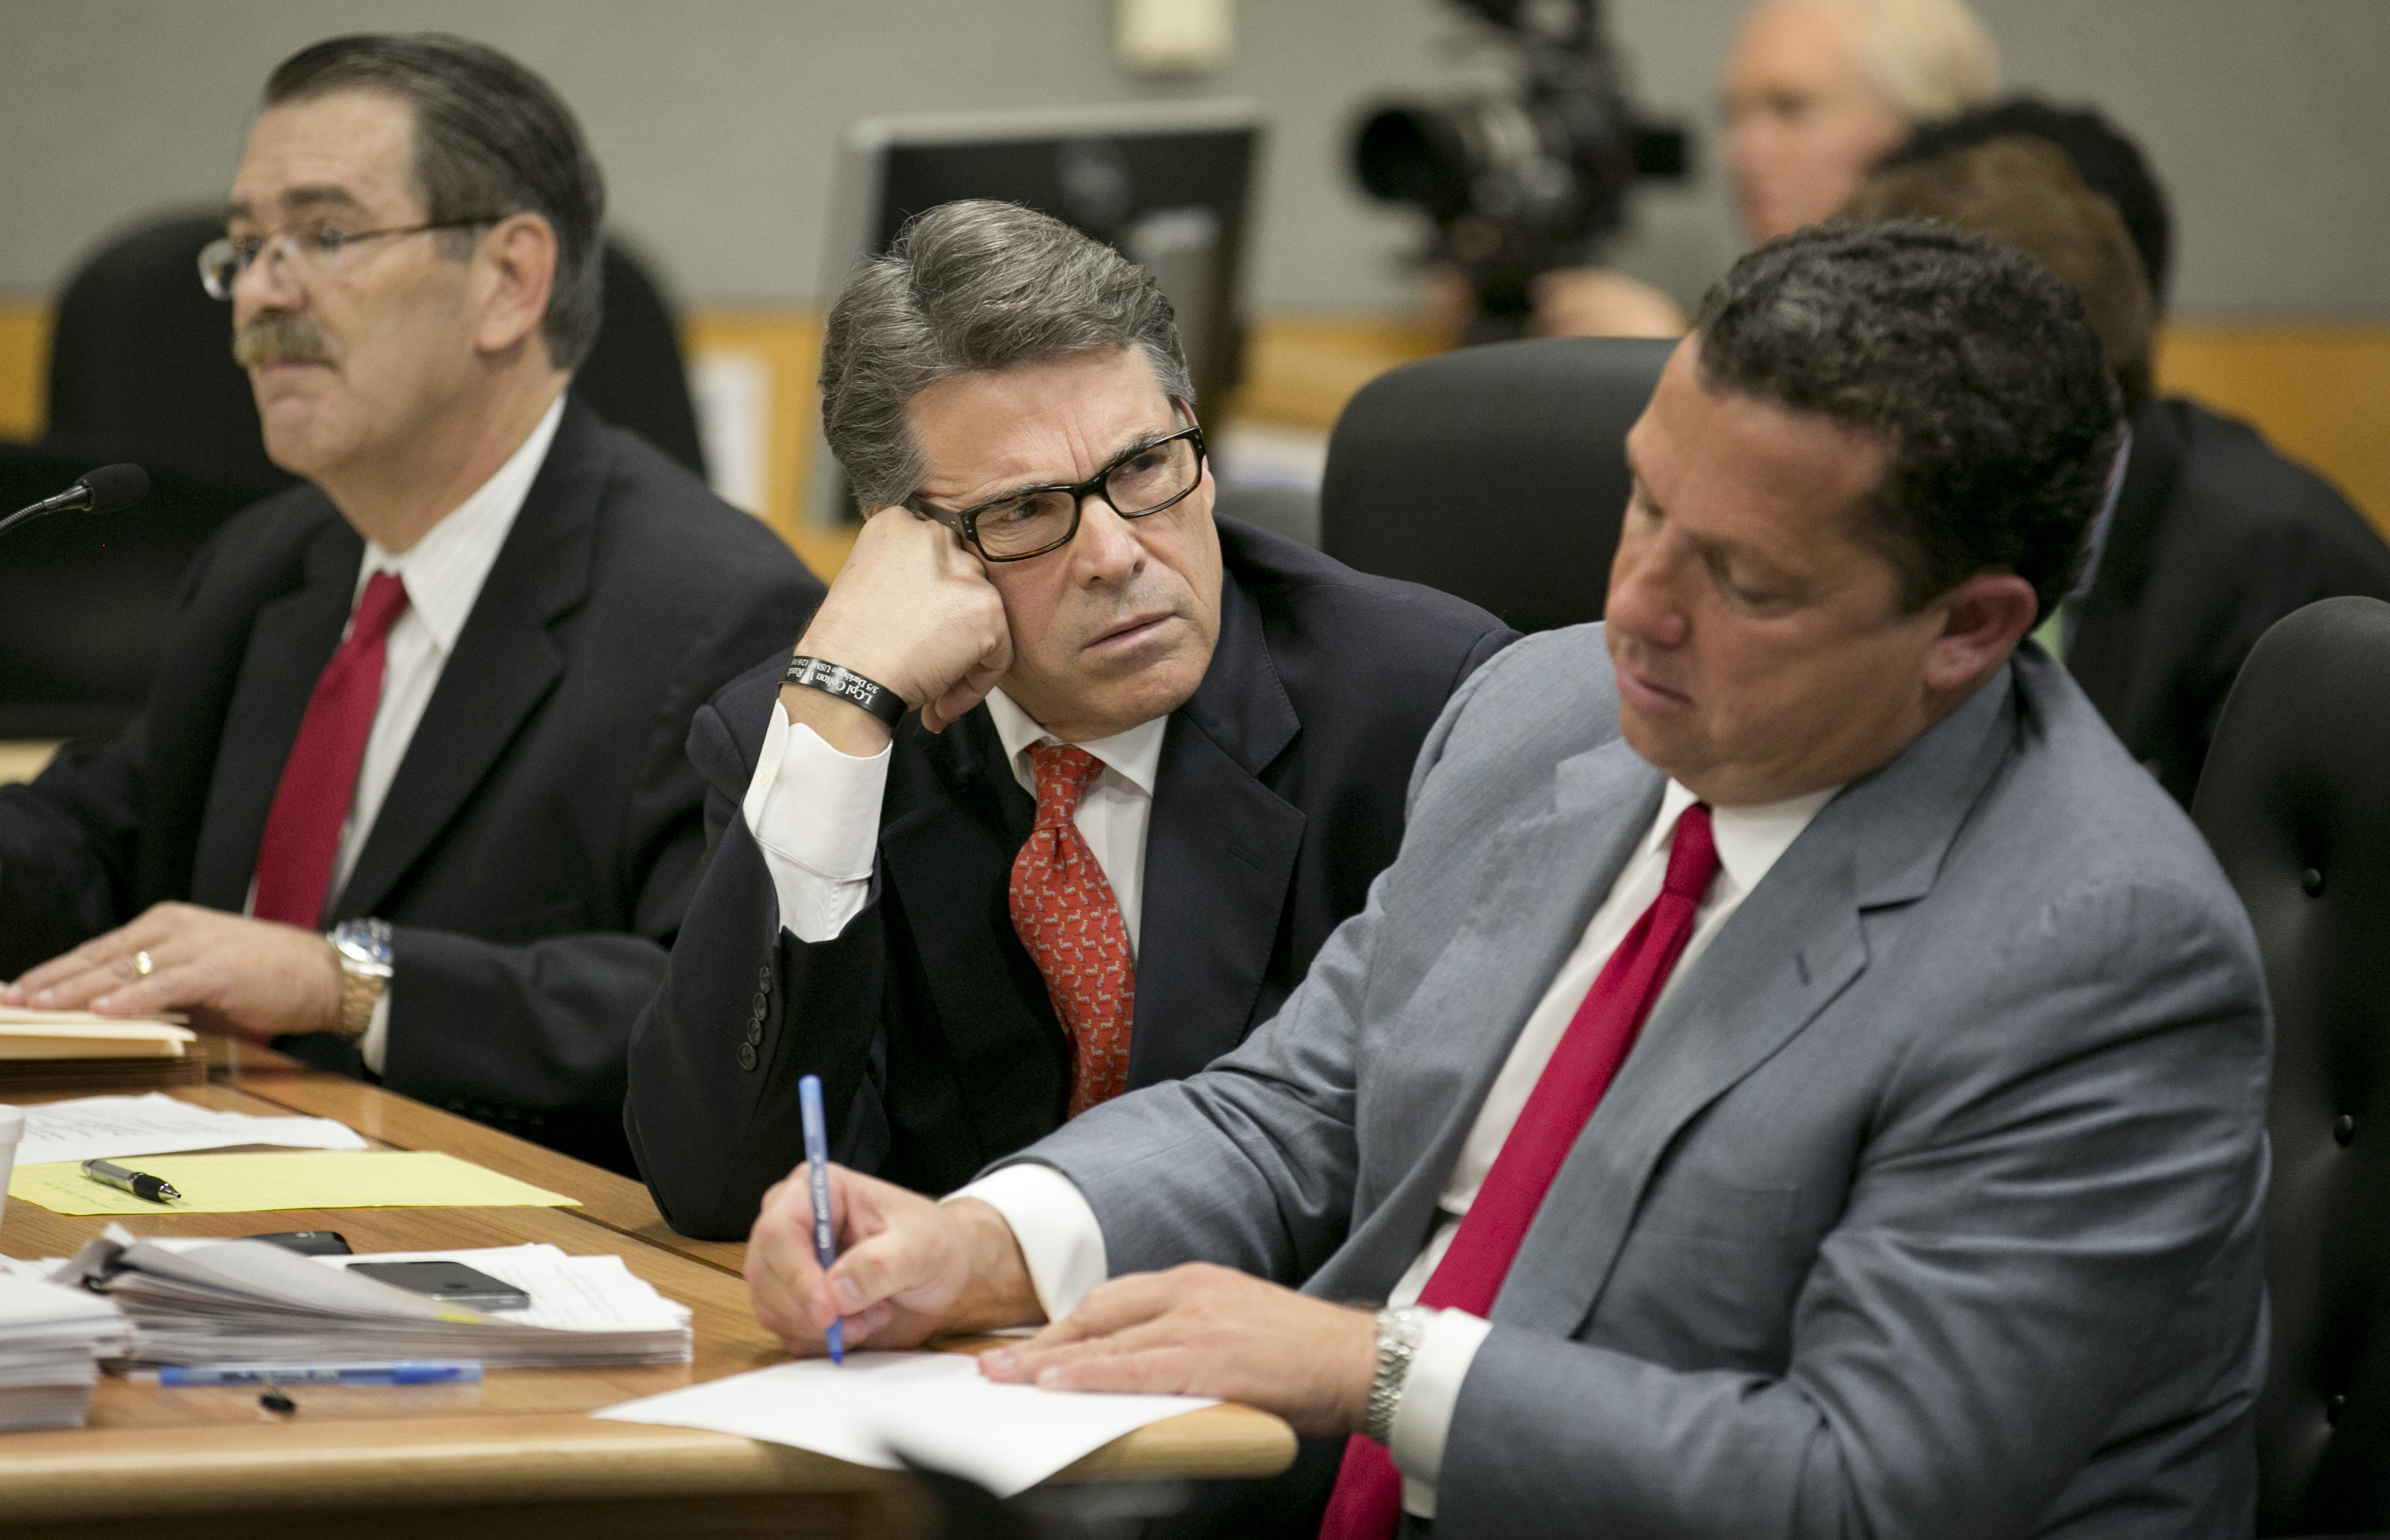 Texas Governor Rick Perry (C) and his lawyers David Botsford (L) and Tony Buzbee at pre-trial hearing  on abuse-of-power charges.